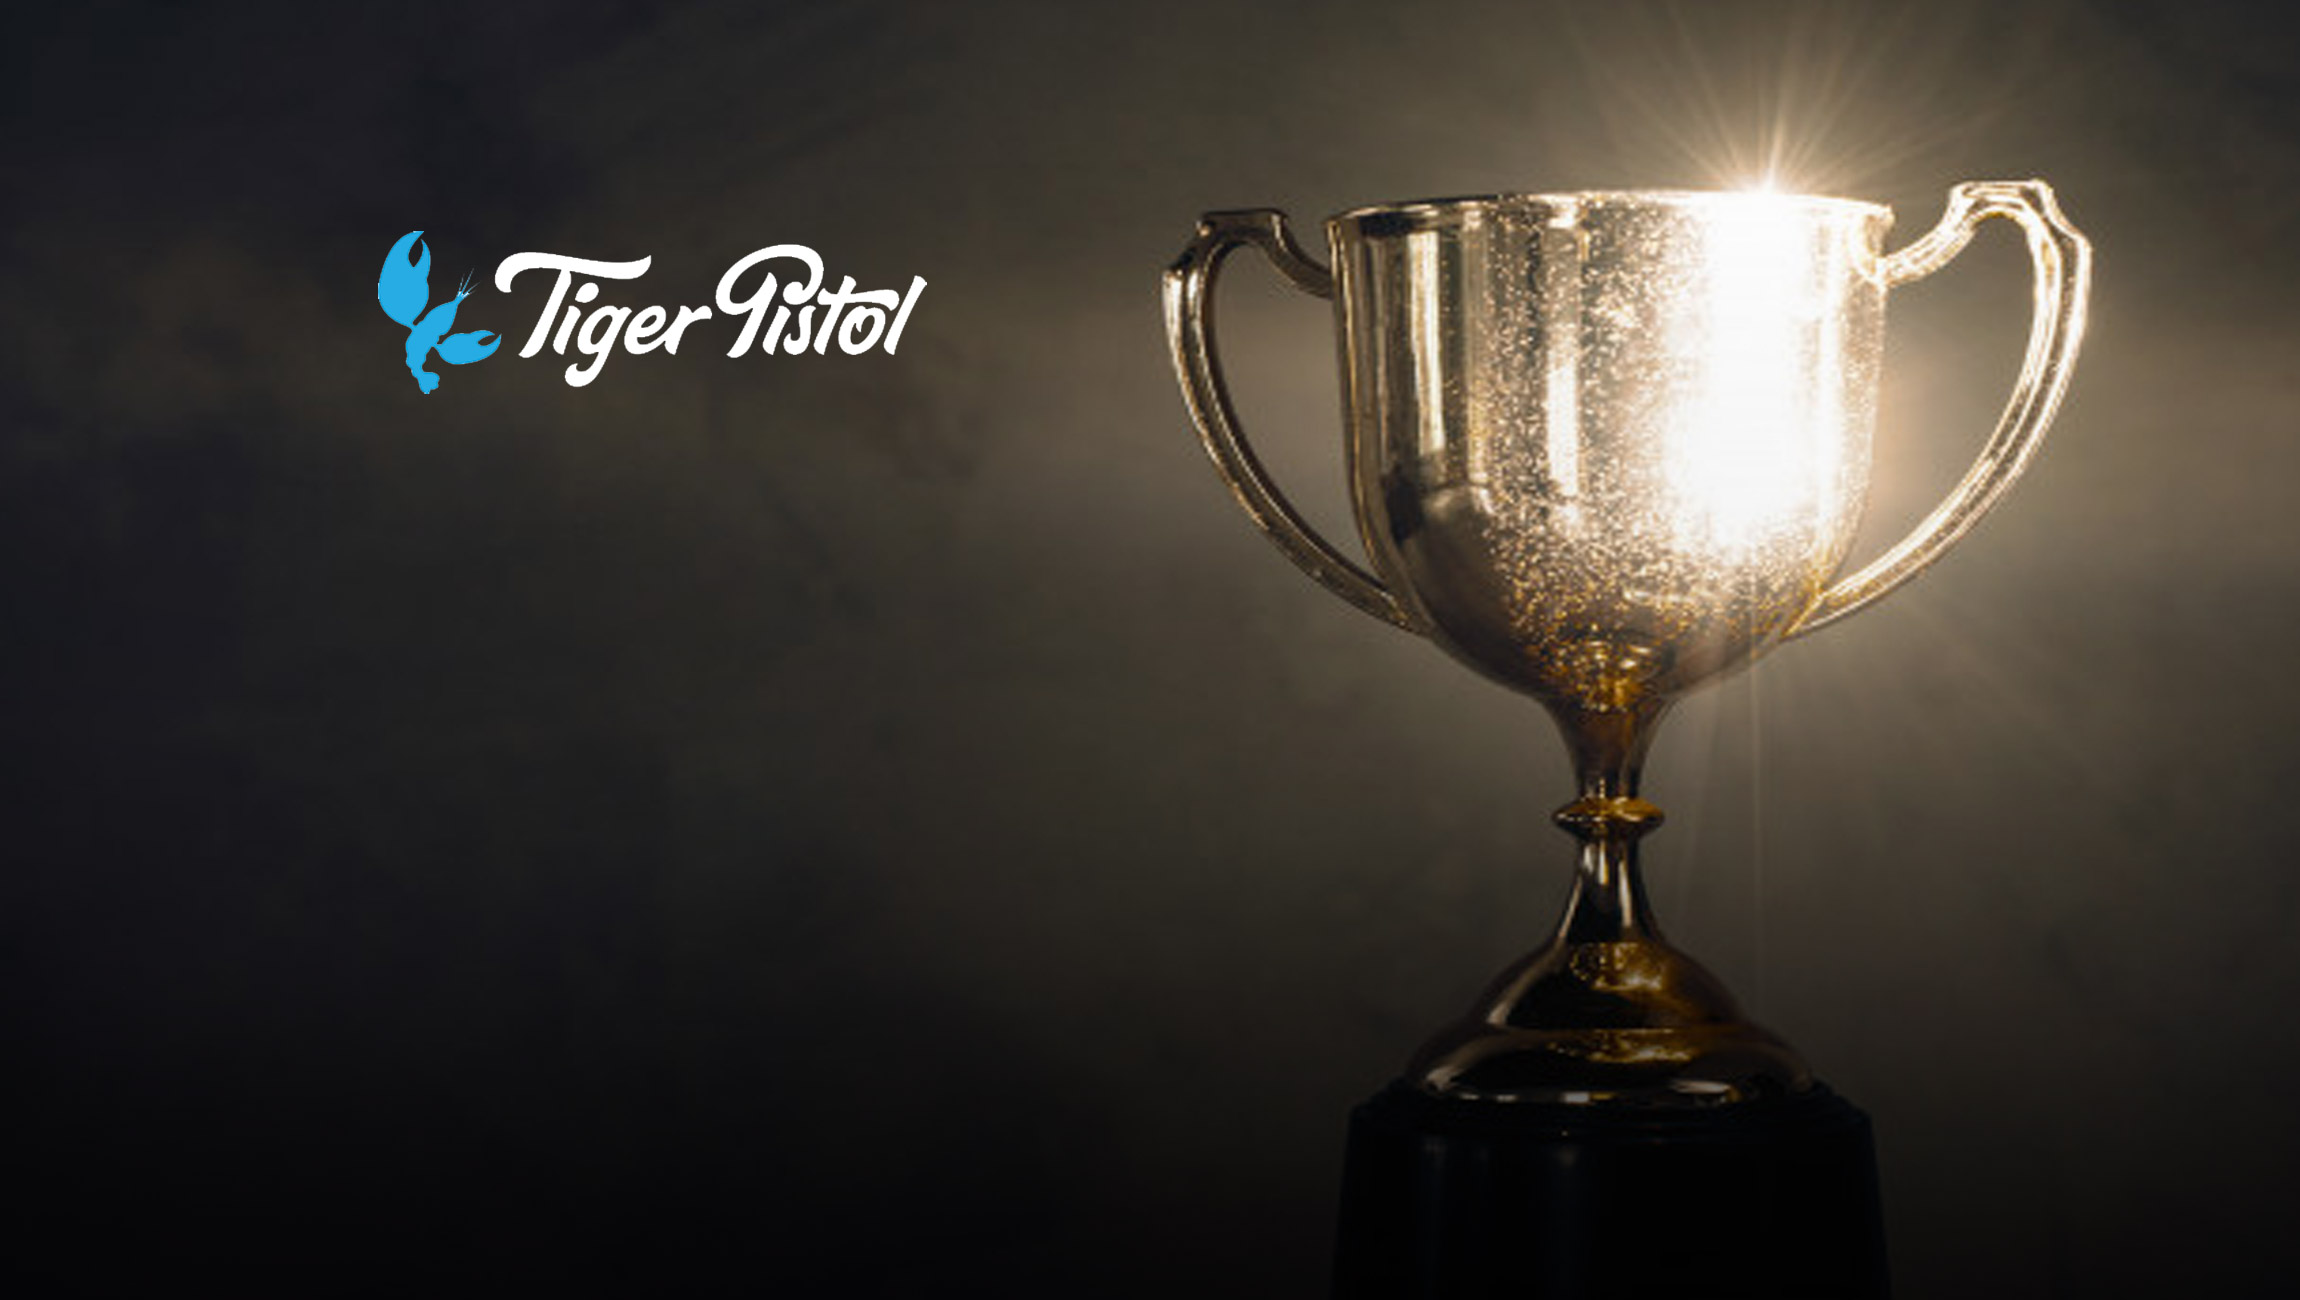 Tiger Pistol Named Finalist in Three Categories for the 12th Annual Shorty Awards